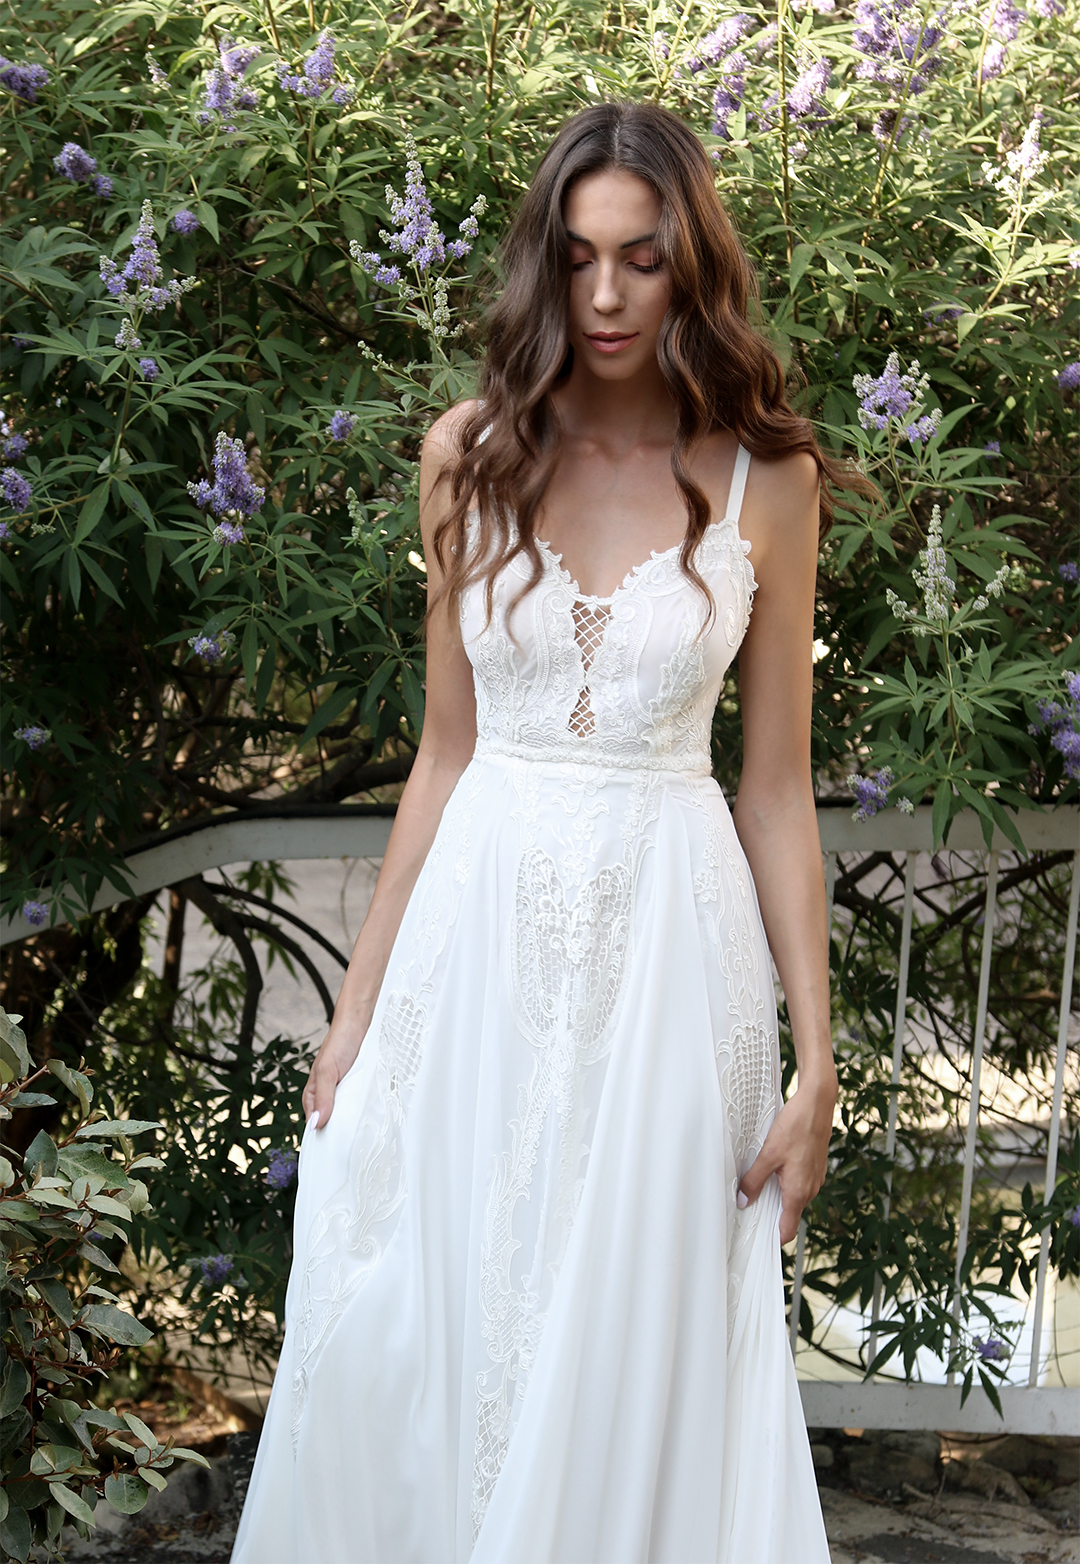 128-The MUSK Collection ELISH Bridal - 2